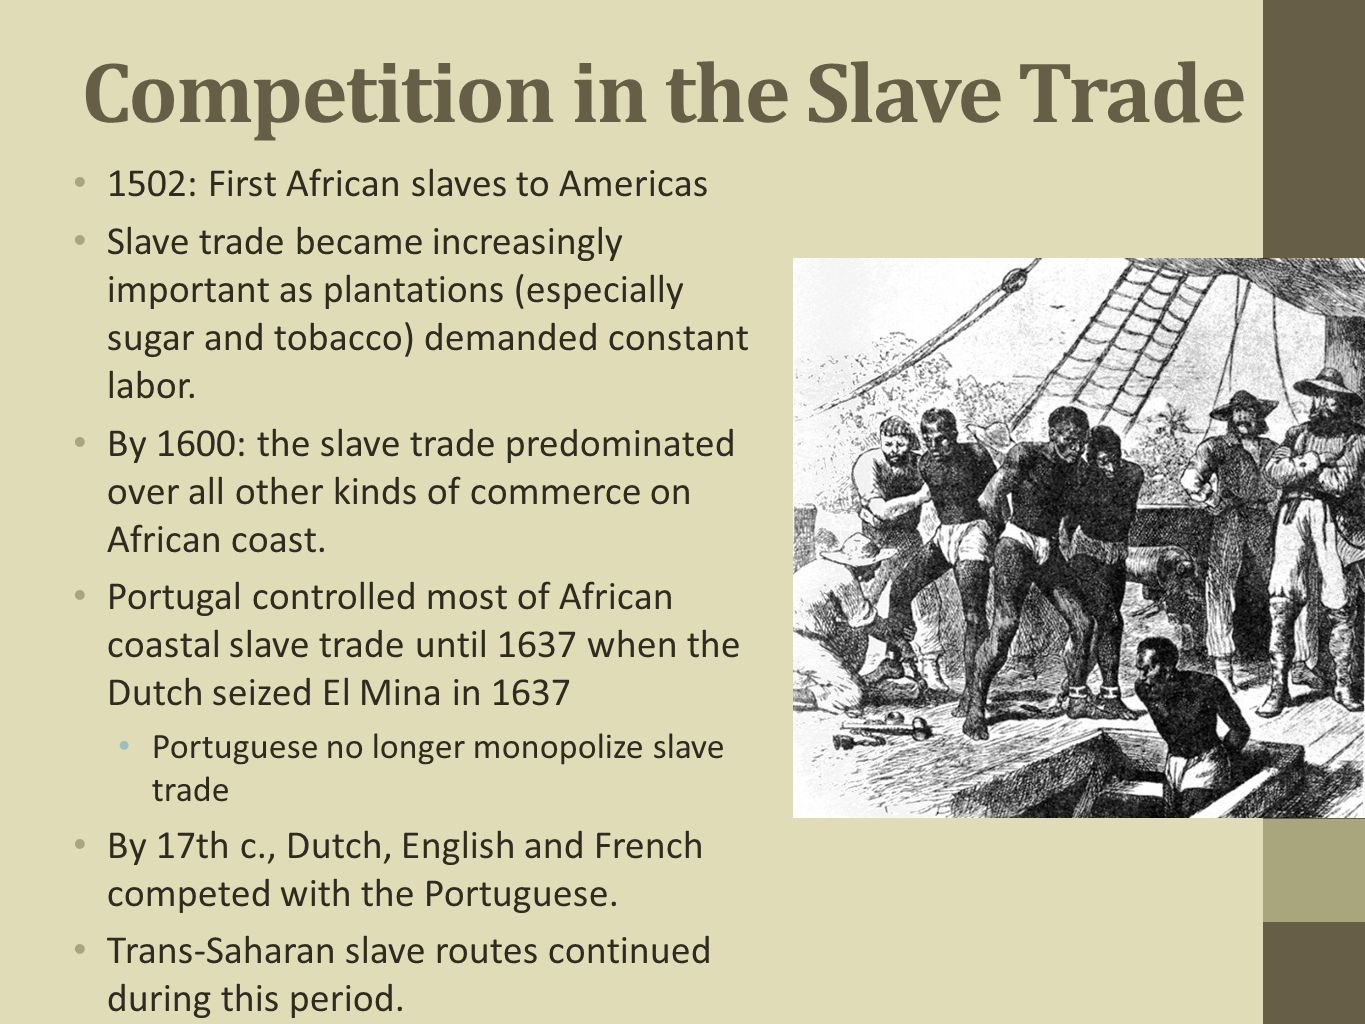 Competition in the Slave Trade